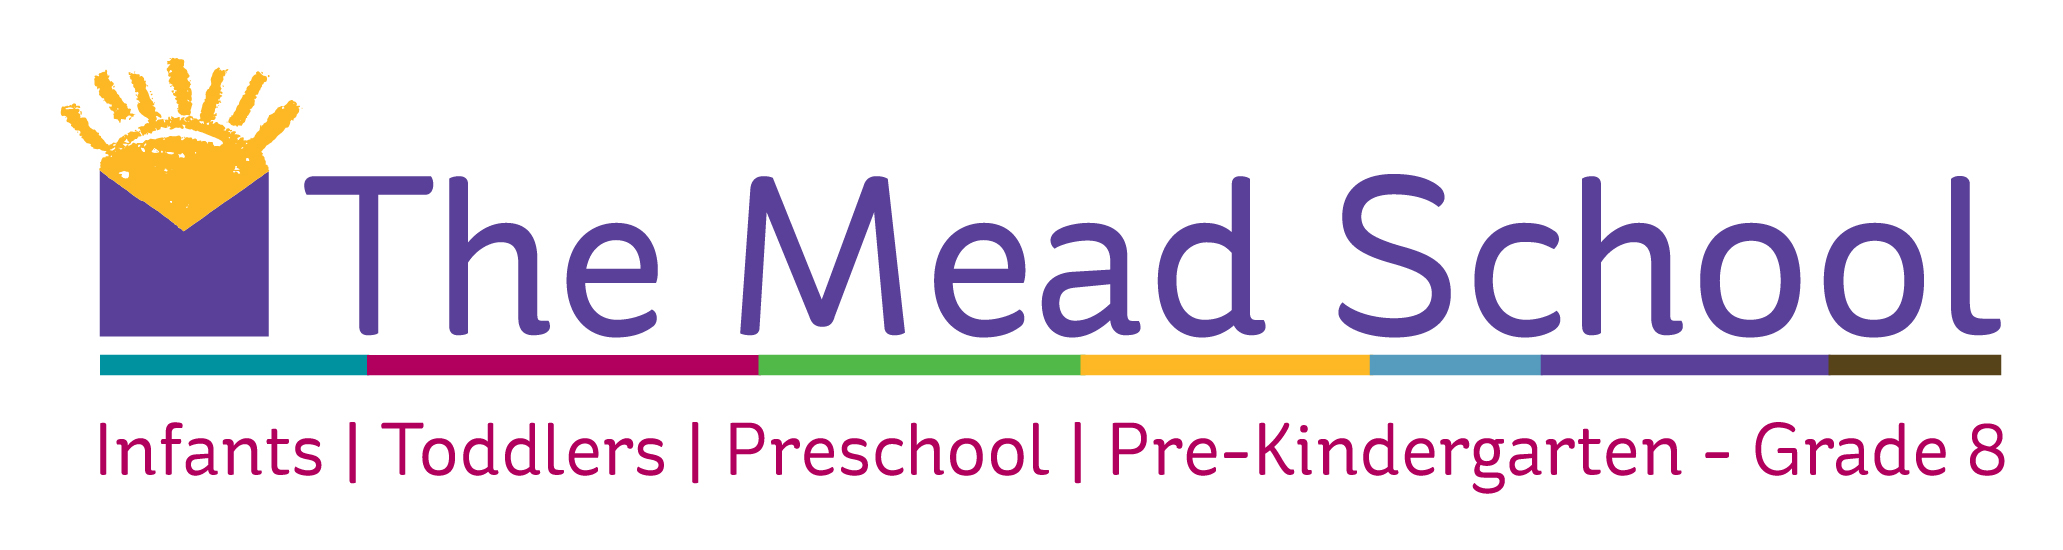 The Mead School